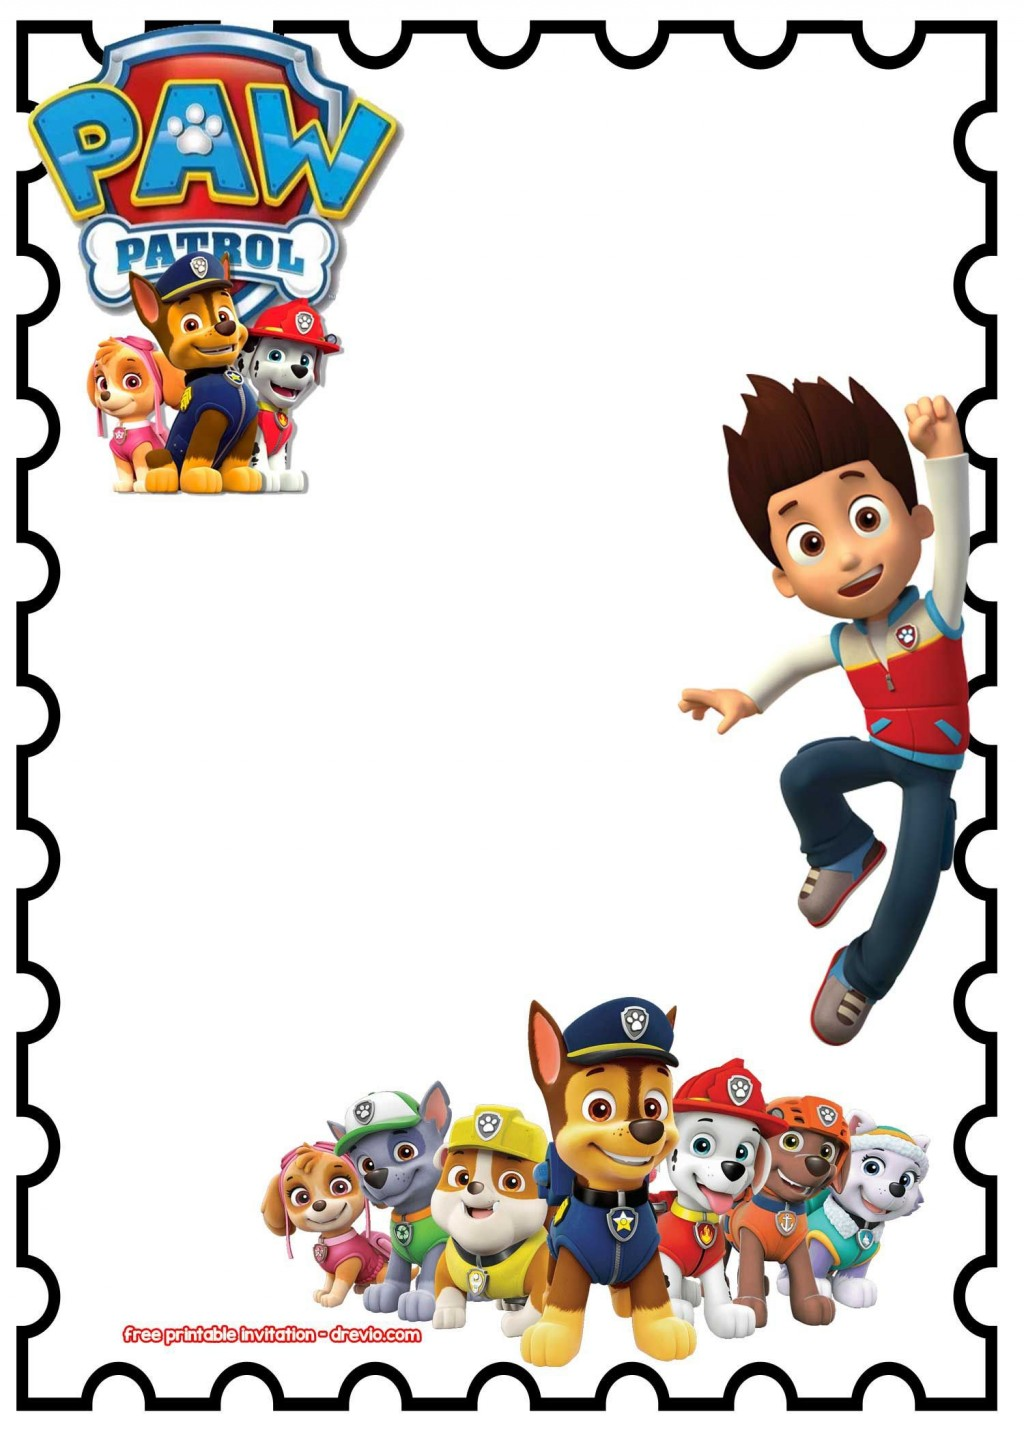 003 Awesome Paw Patrol Birthday Invitation Template Picture  Party Invite Wording Skye FreeLarge